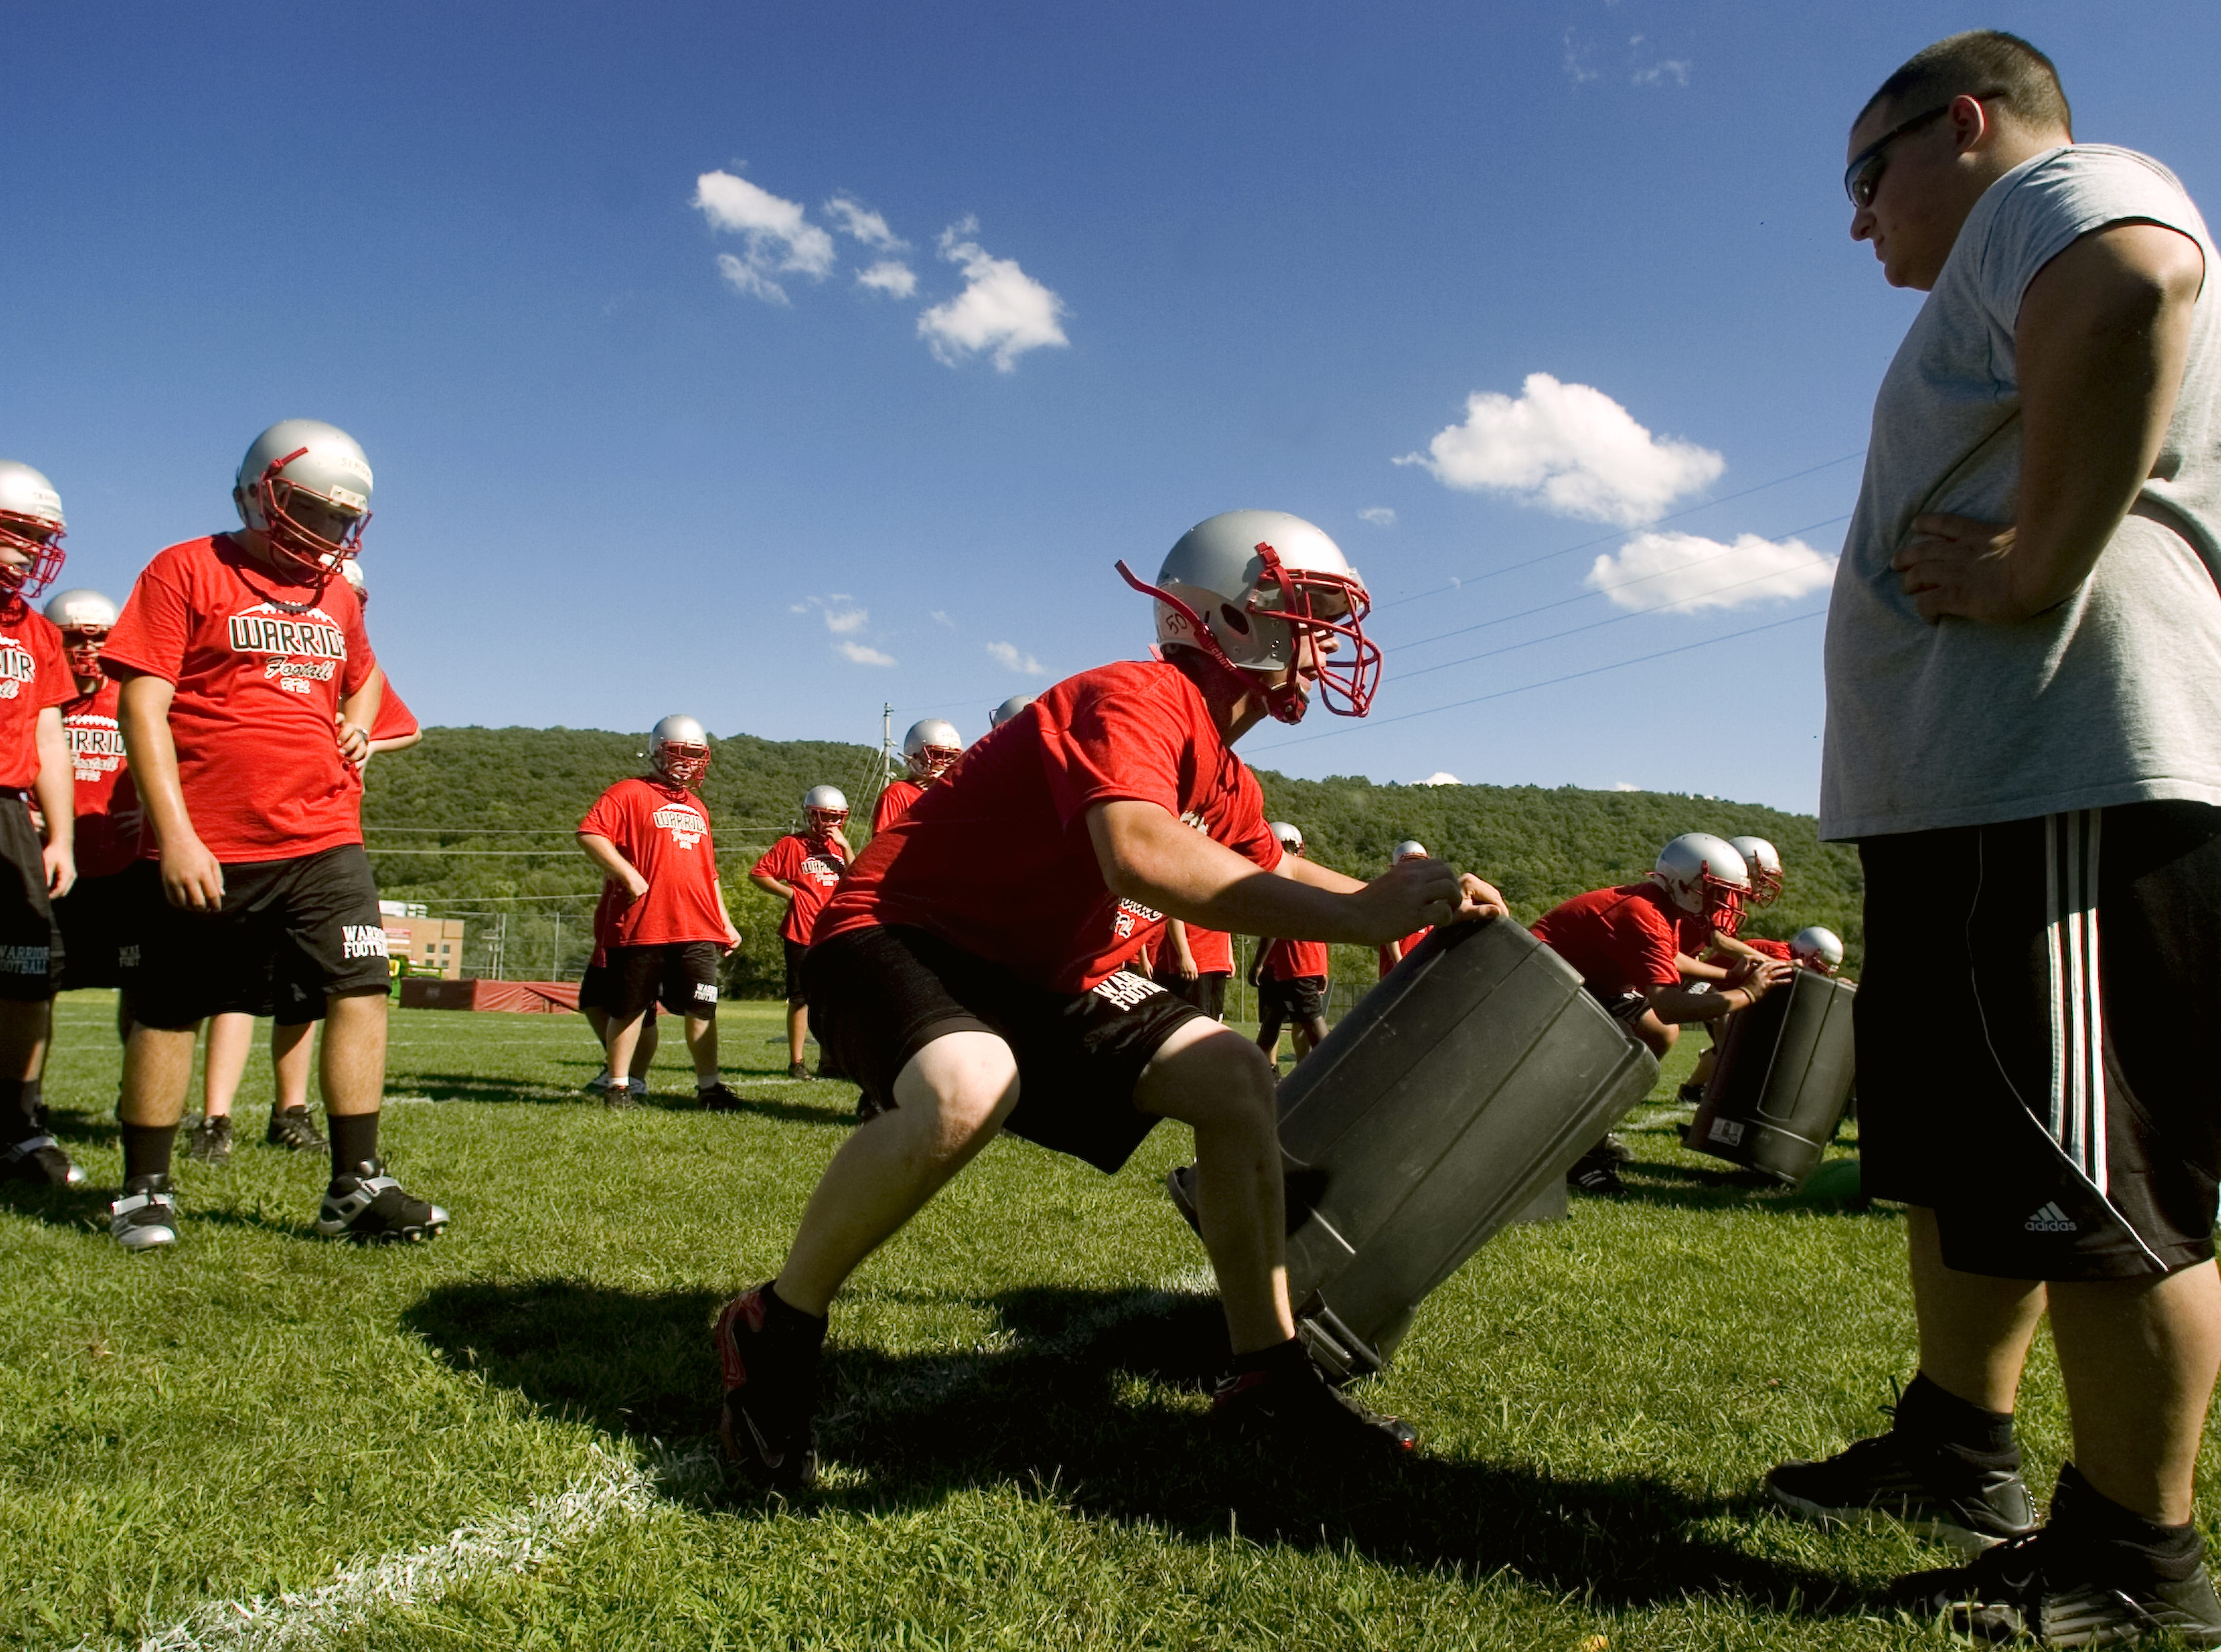 From 2010: Chenango Valley High School's Varsity and Junior Varsity teams began the season's first day of practice along with competing teams throughout the county on Monday.